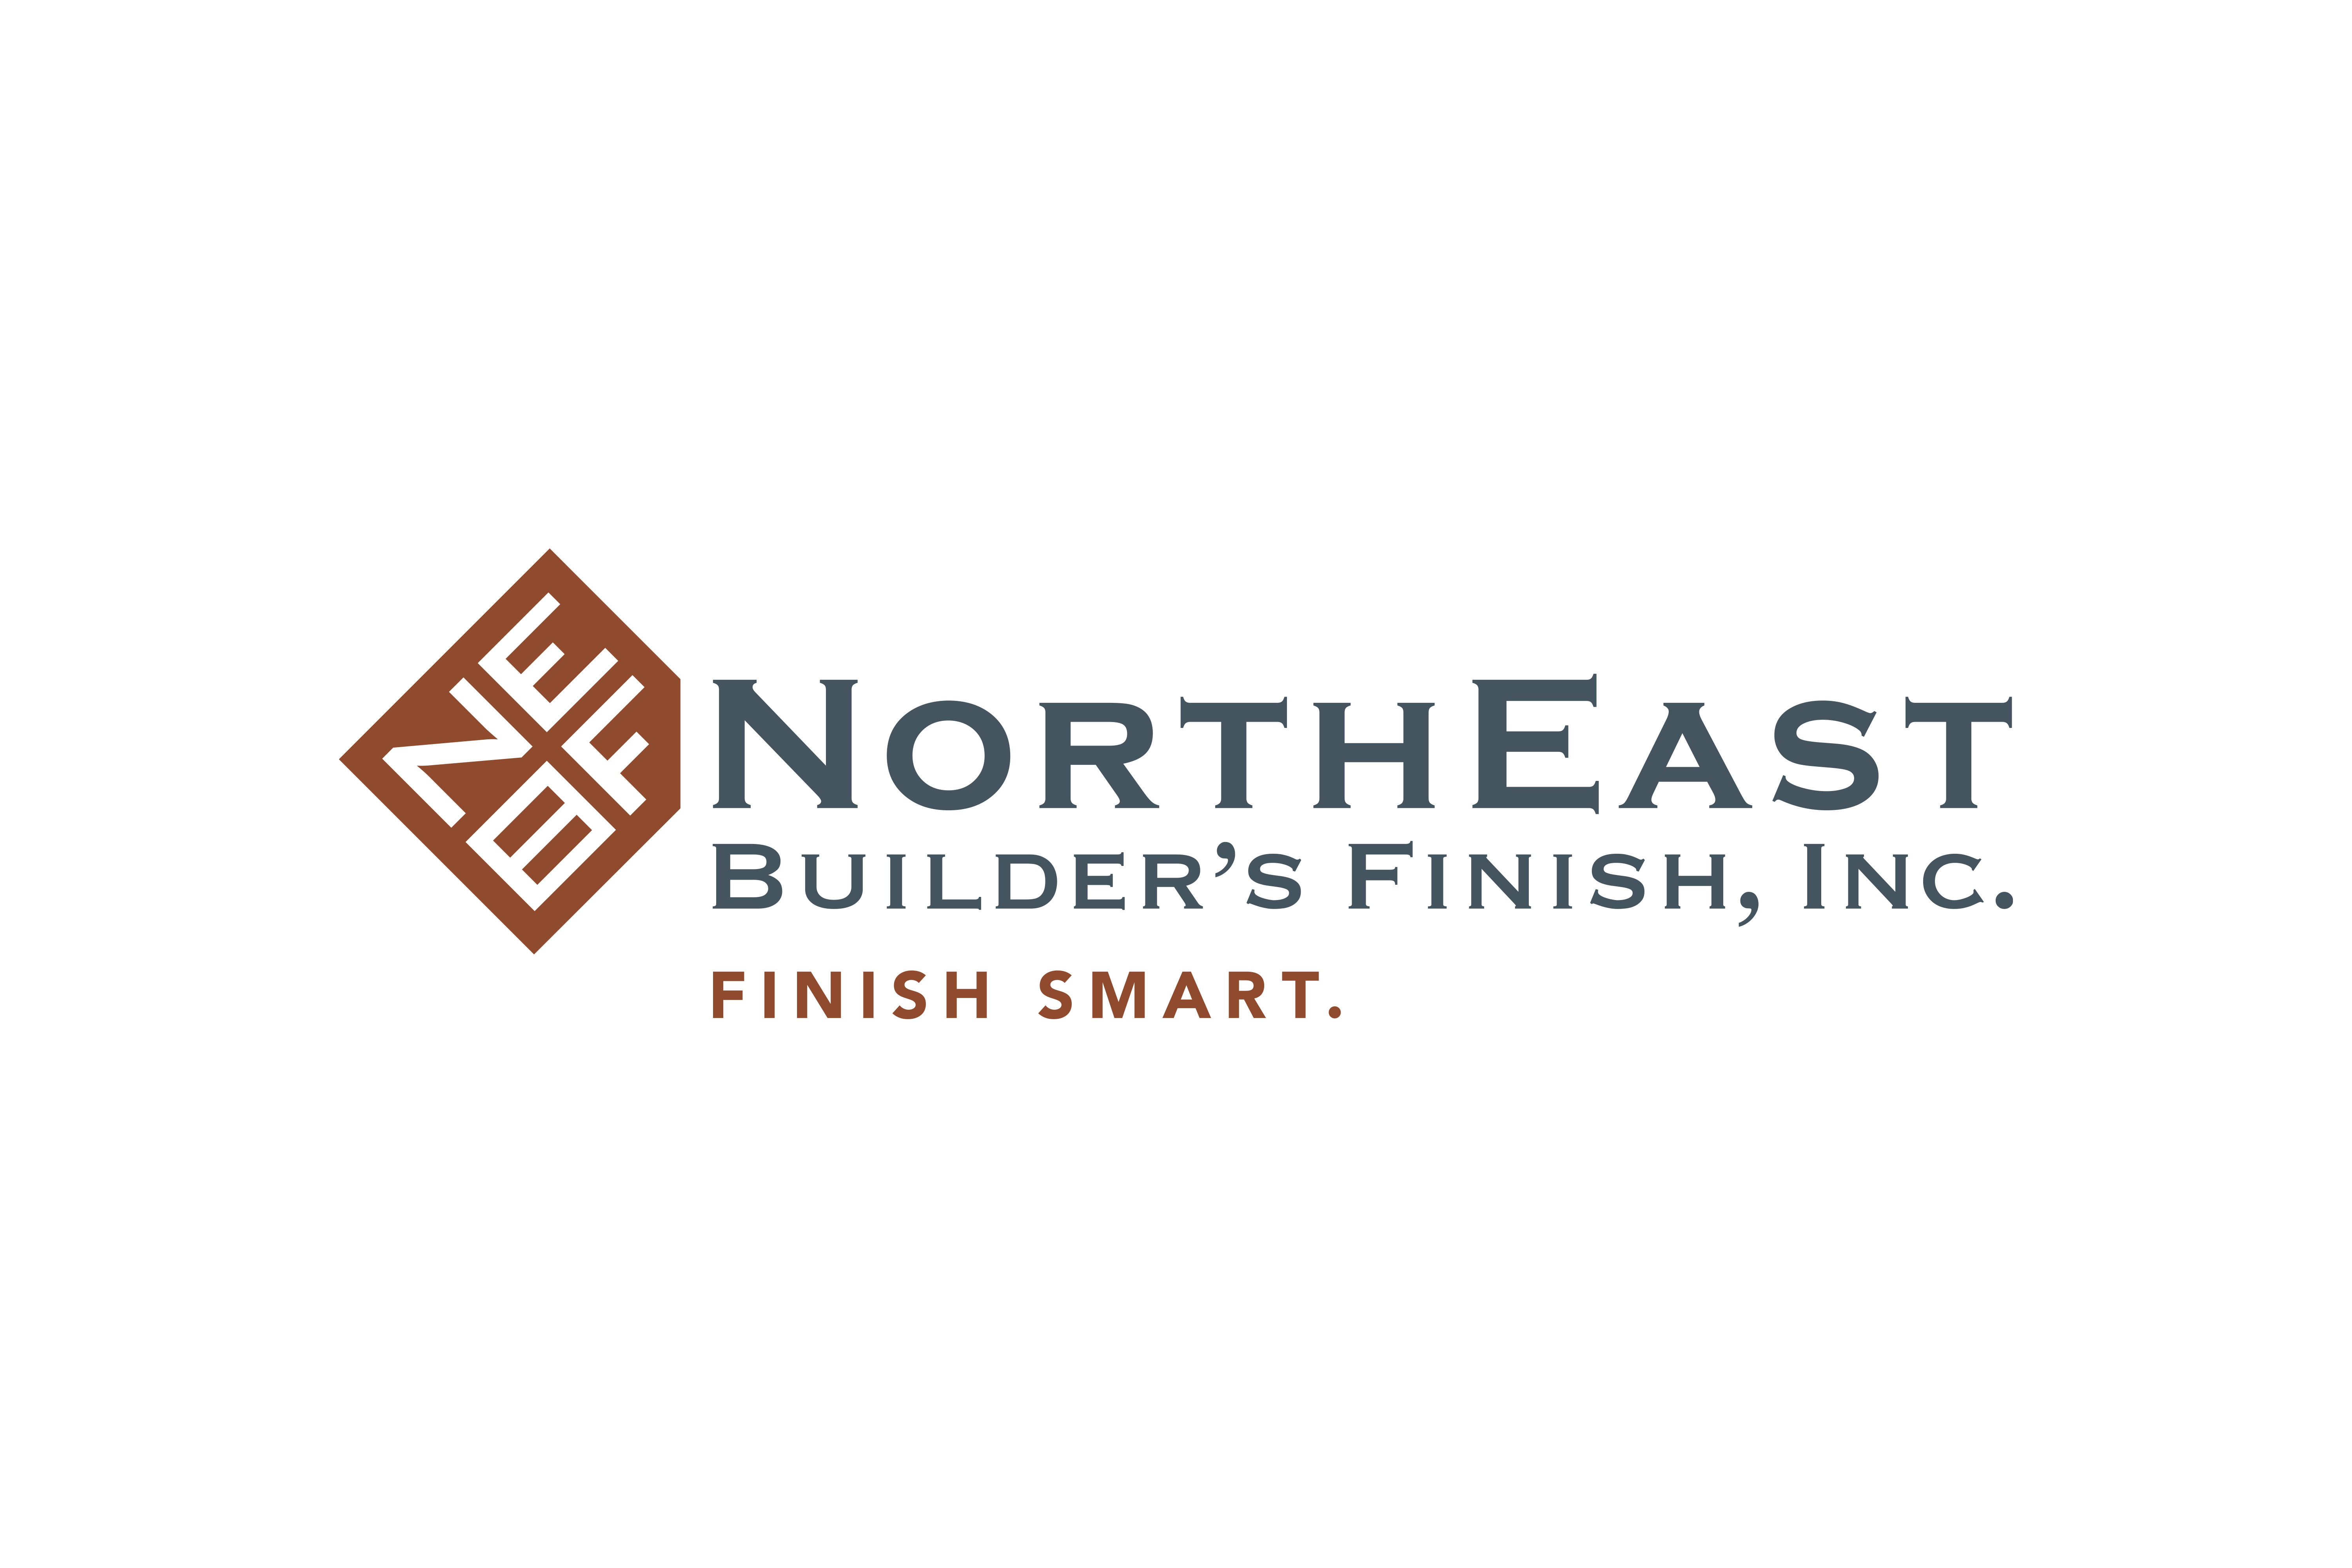 Logo design by Virtual Apiary for NorthEast Builder's Finish, Inc.